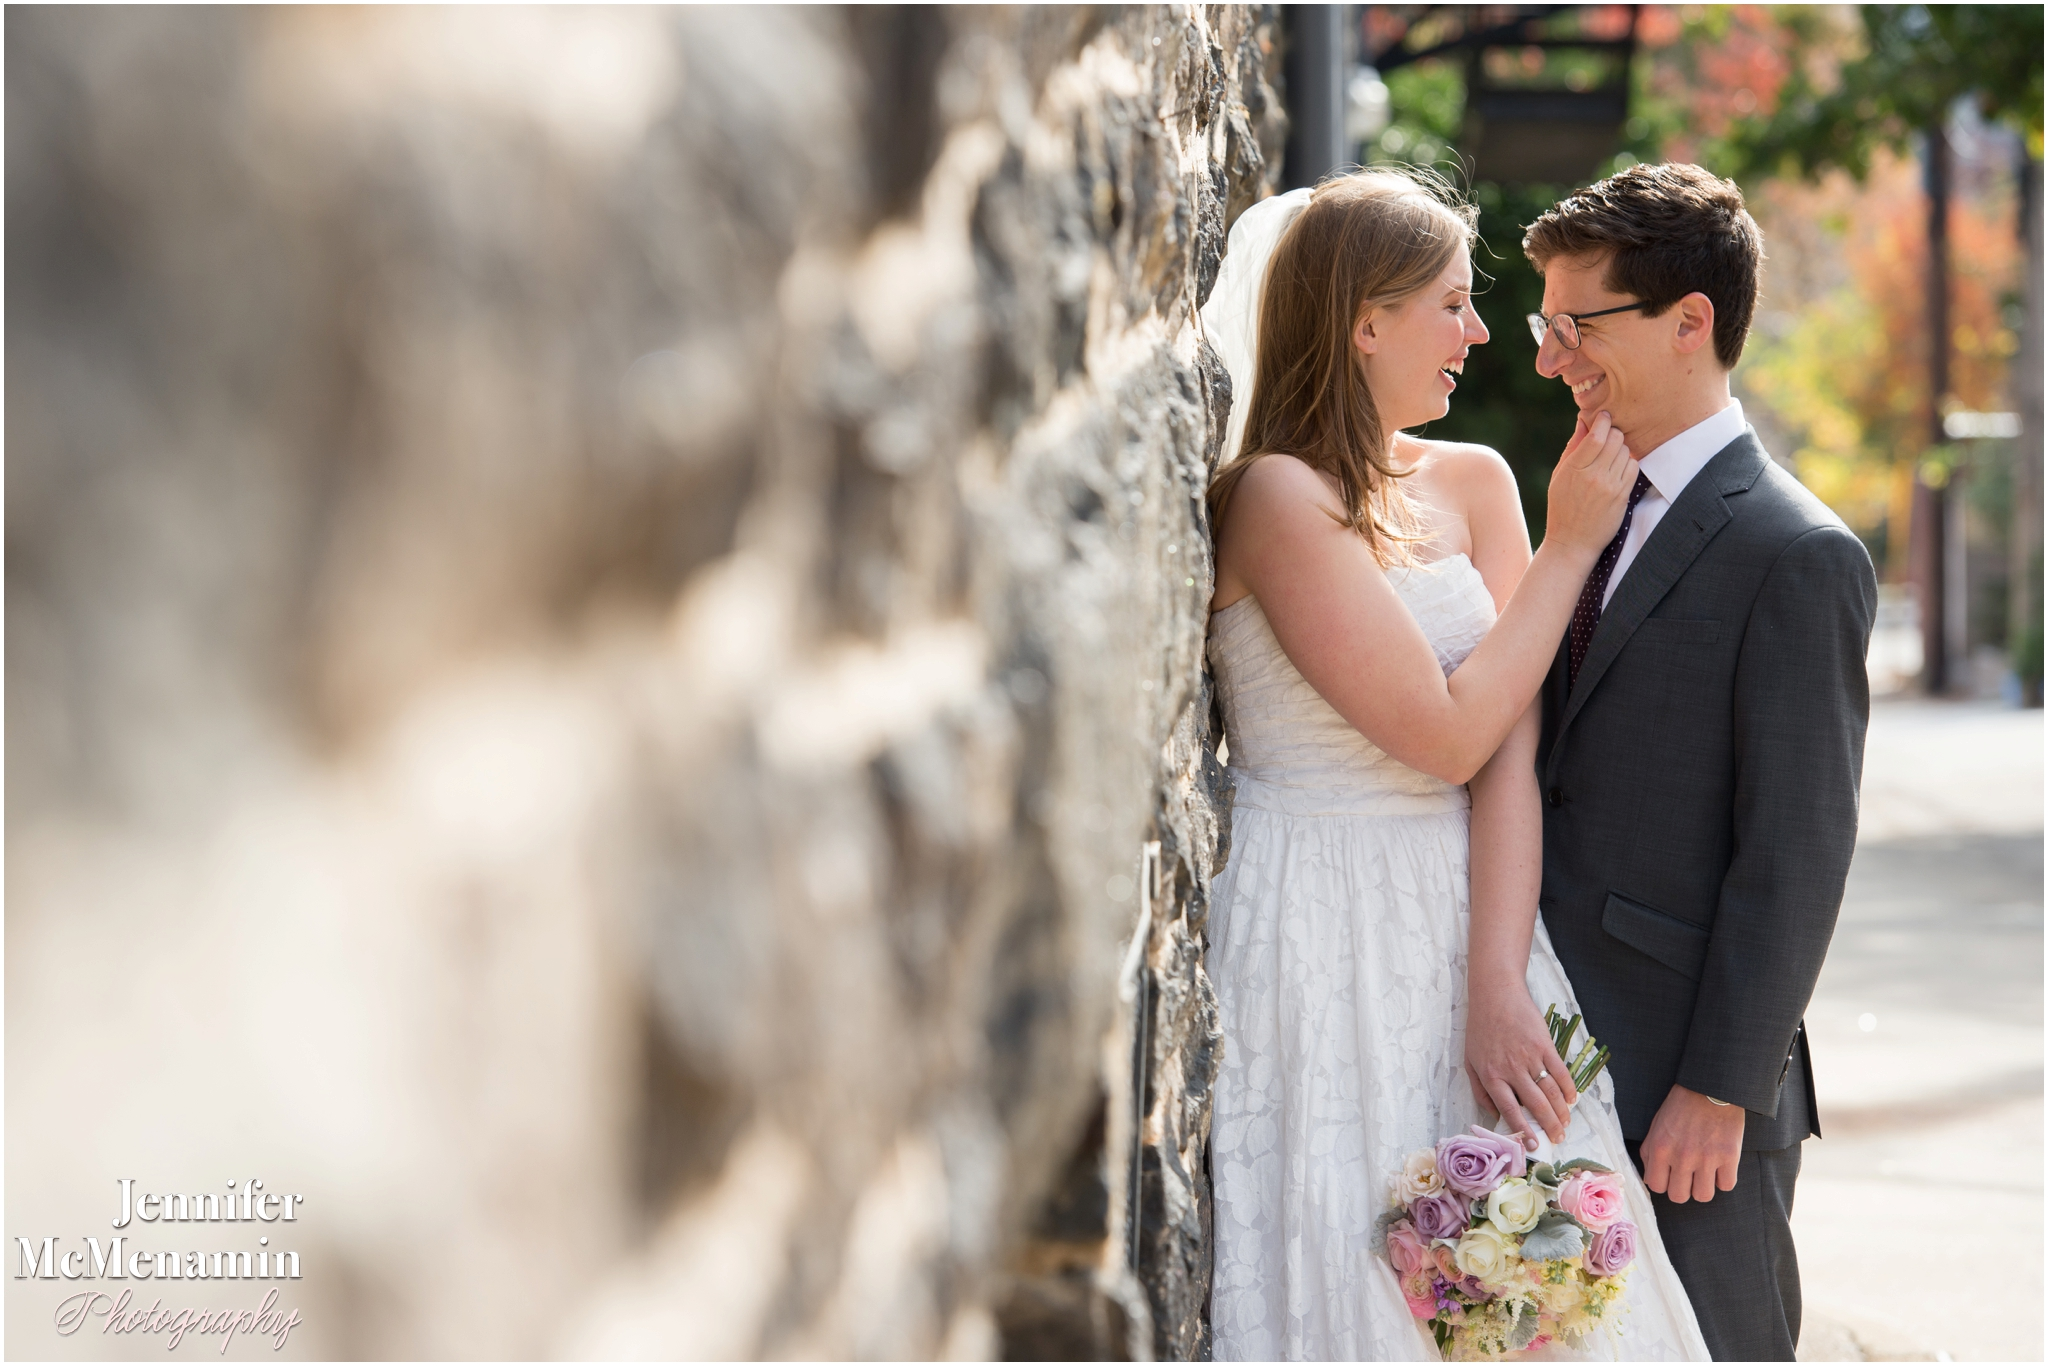 0040-WebbSlivnick_01314-0272_JenniferMcMenaminPhotography_George-Peabody-Library-wedding_Baltimore-wedding-photography_Baltimore-wedding-photographer